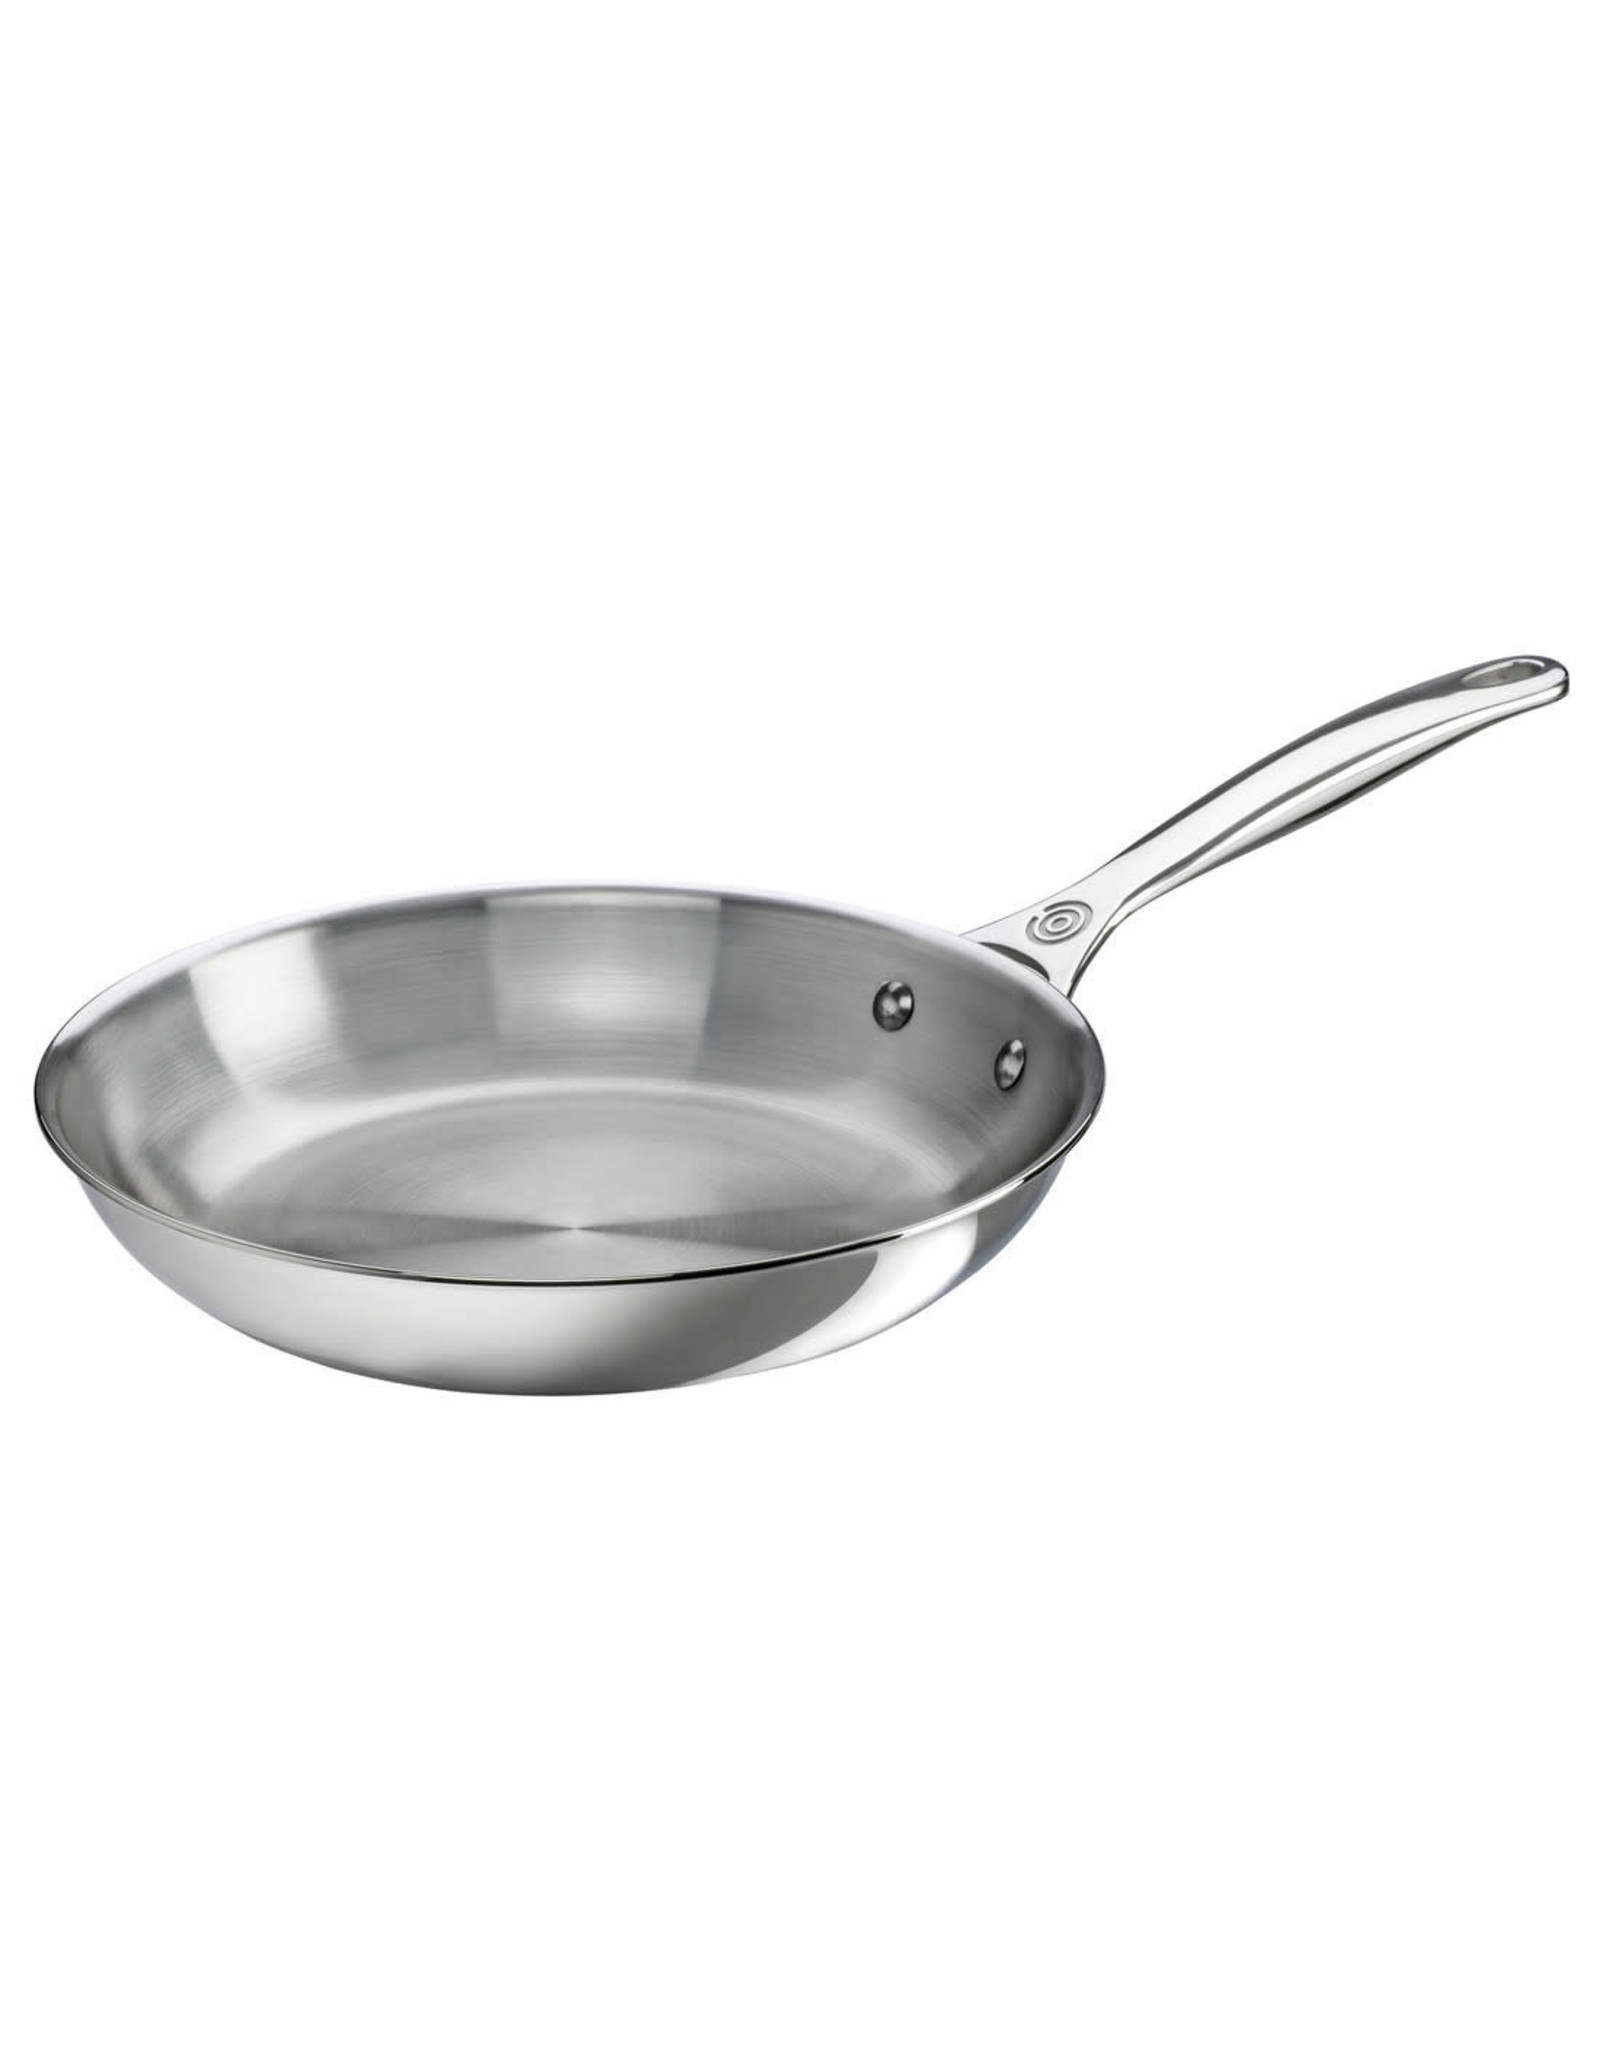 """Le Creuset Le Creuset 10"""" Stainless Steel Fry Pan"""